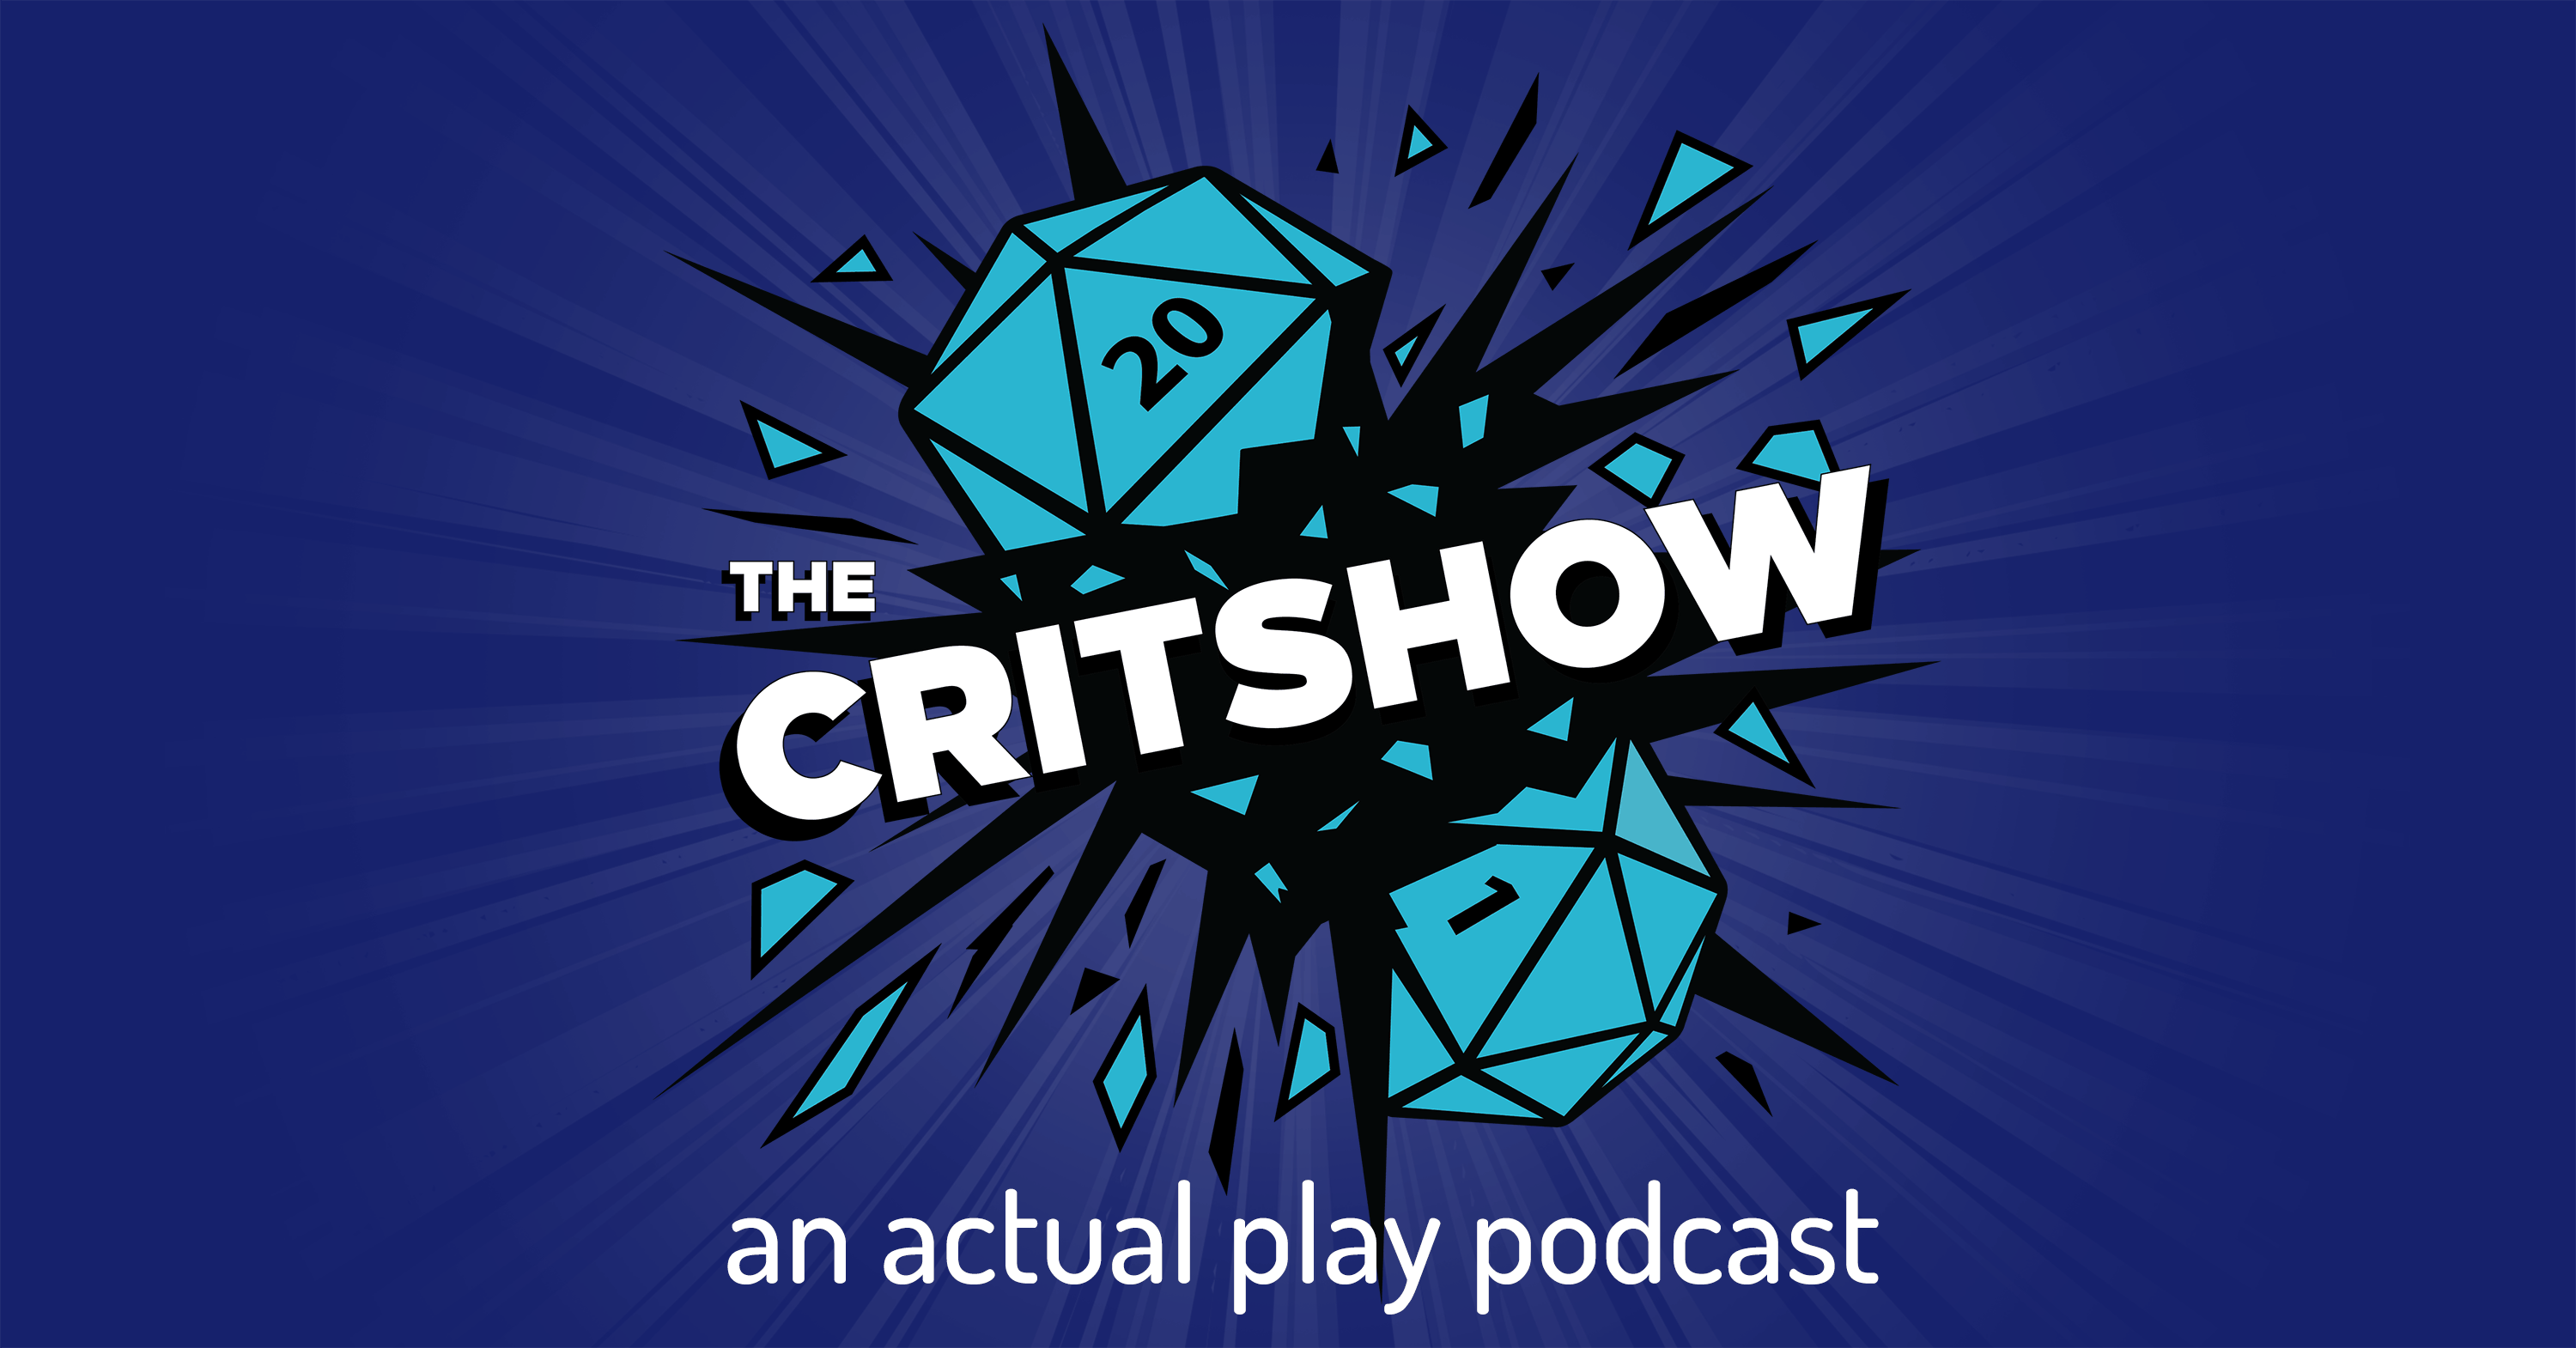 The Critshow | an actual play podcast